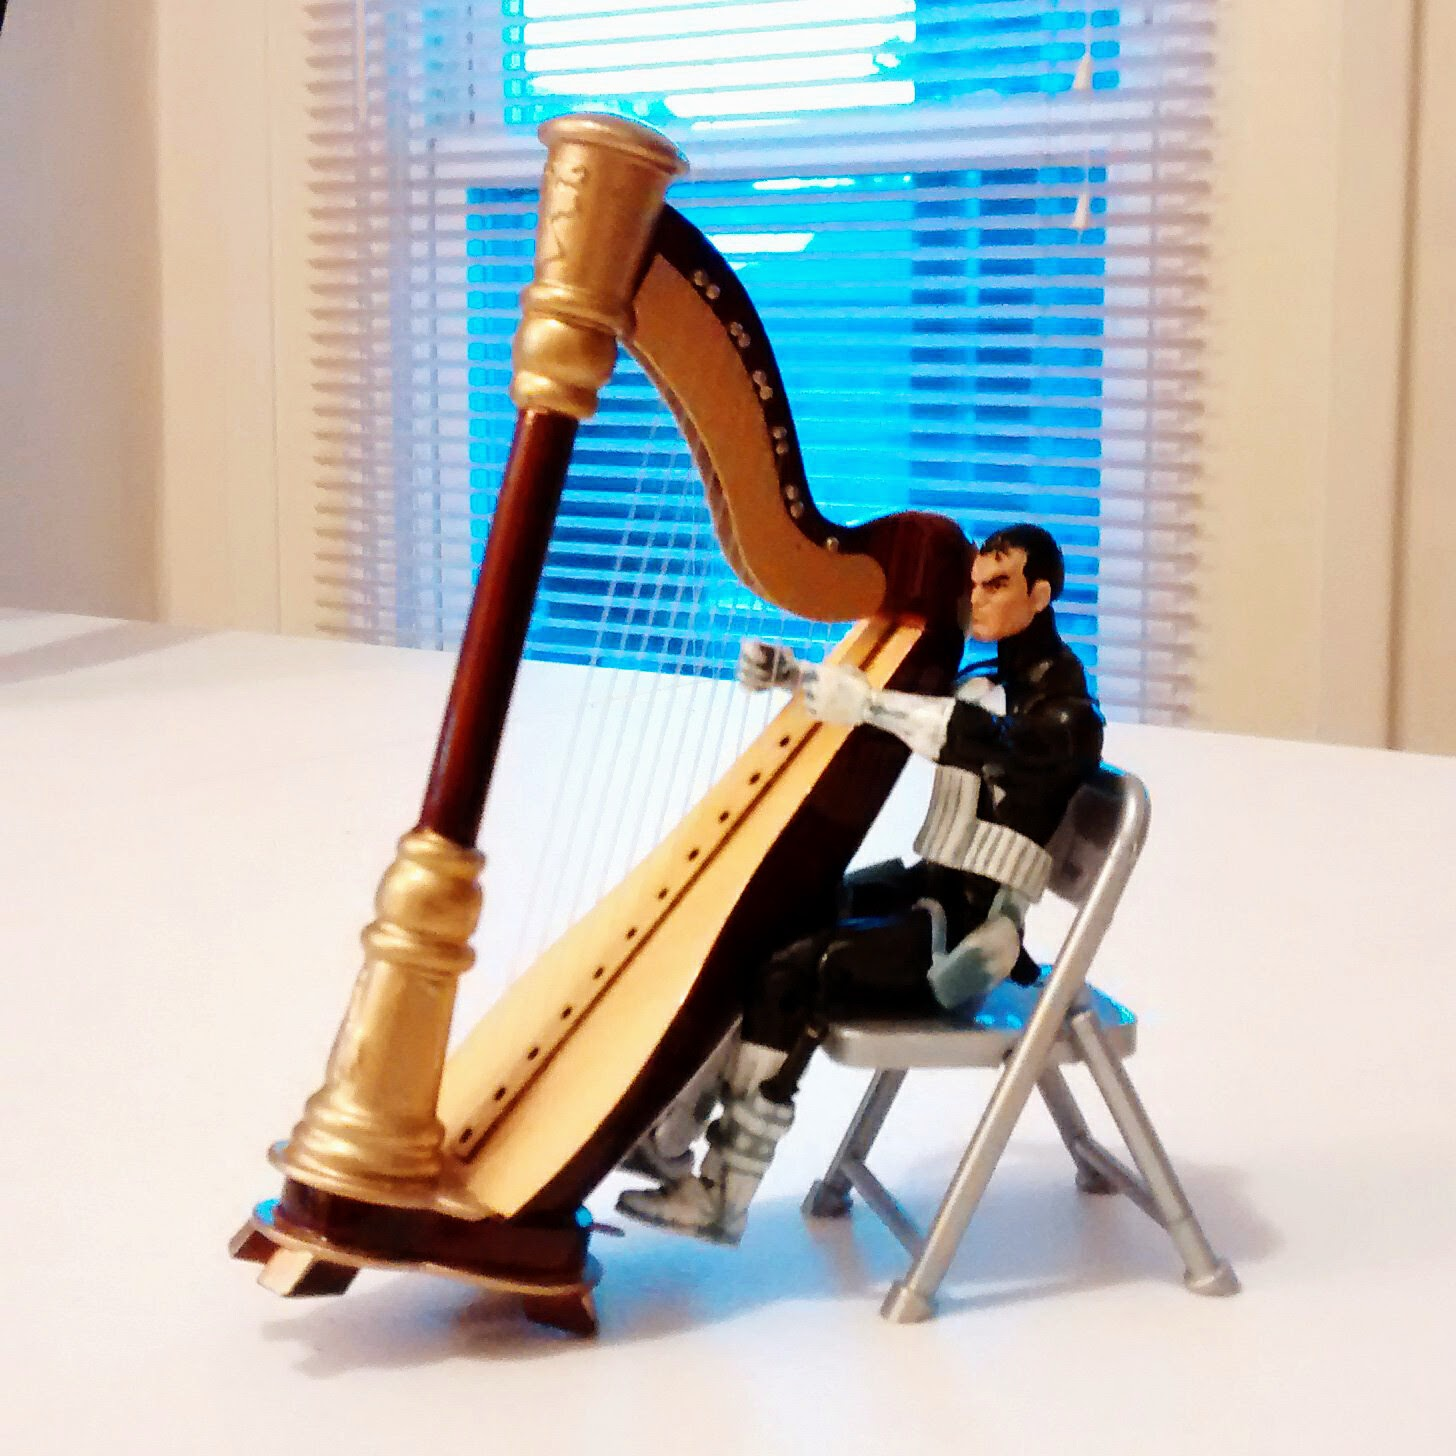 Yes, he can sit and play his harp after all!